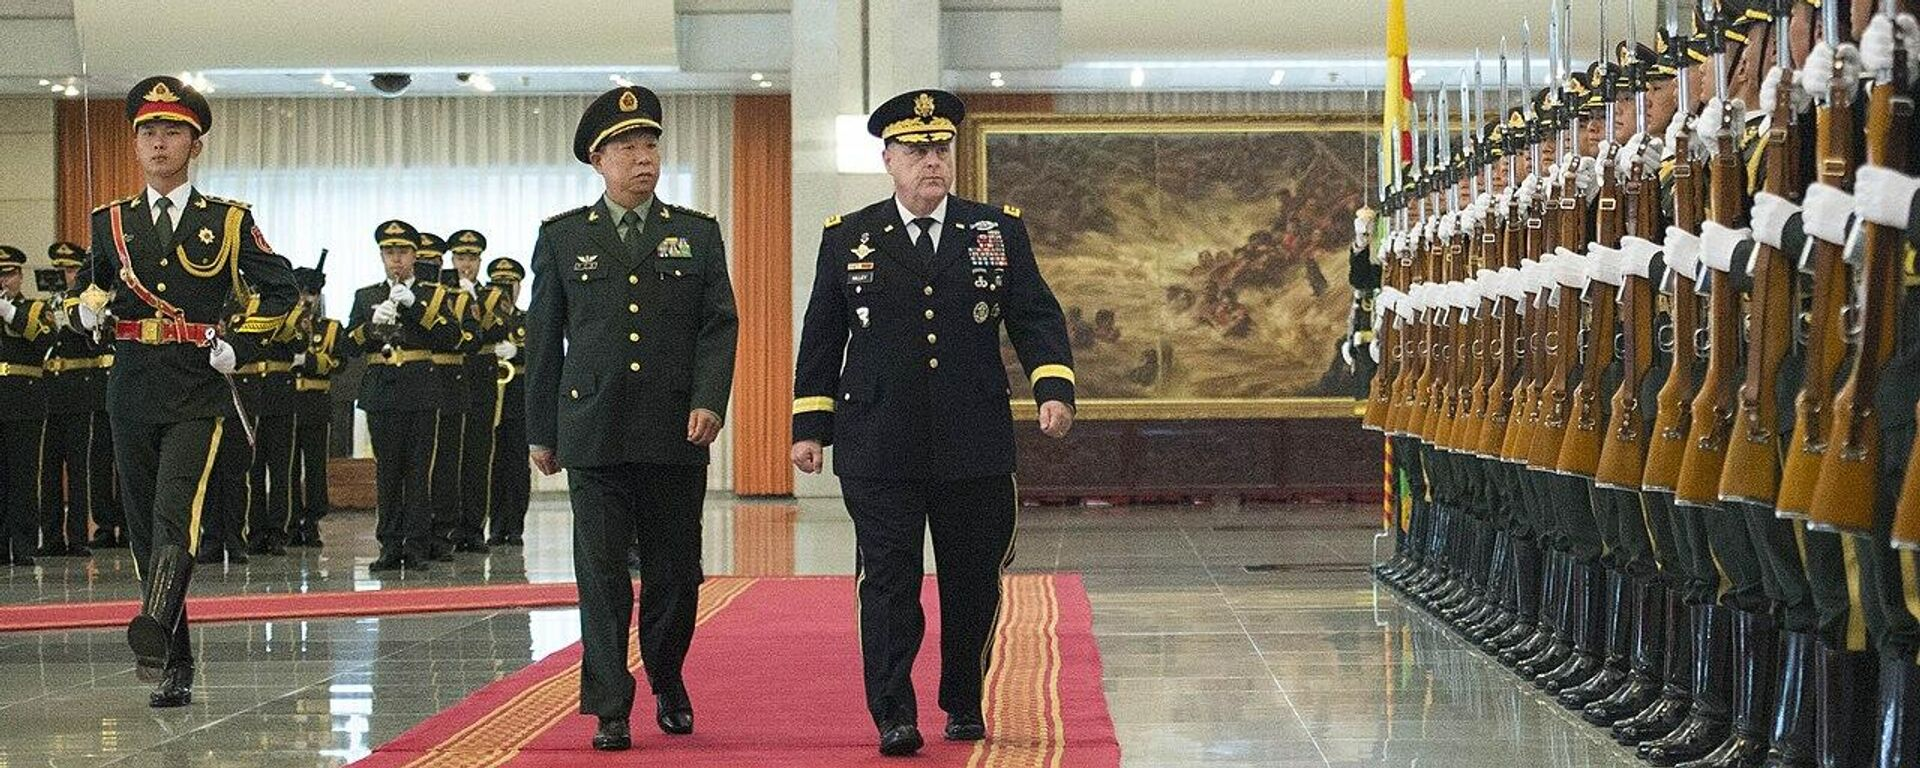 U.S. Army Chief of Staff General Mark A. Milley and Commander of the PLA Ground Force General Li Zuocheng inspect a Chinese military contingent at the Bayi Building in Beijing, China, Aug. 16, 2016 - Sputnik International, 1920, 28.09.2021